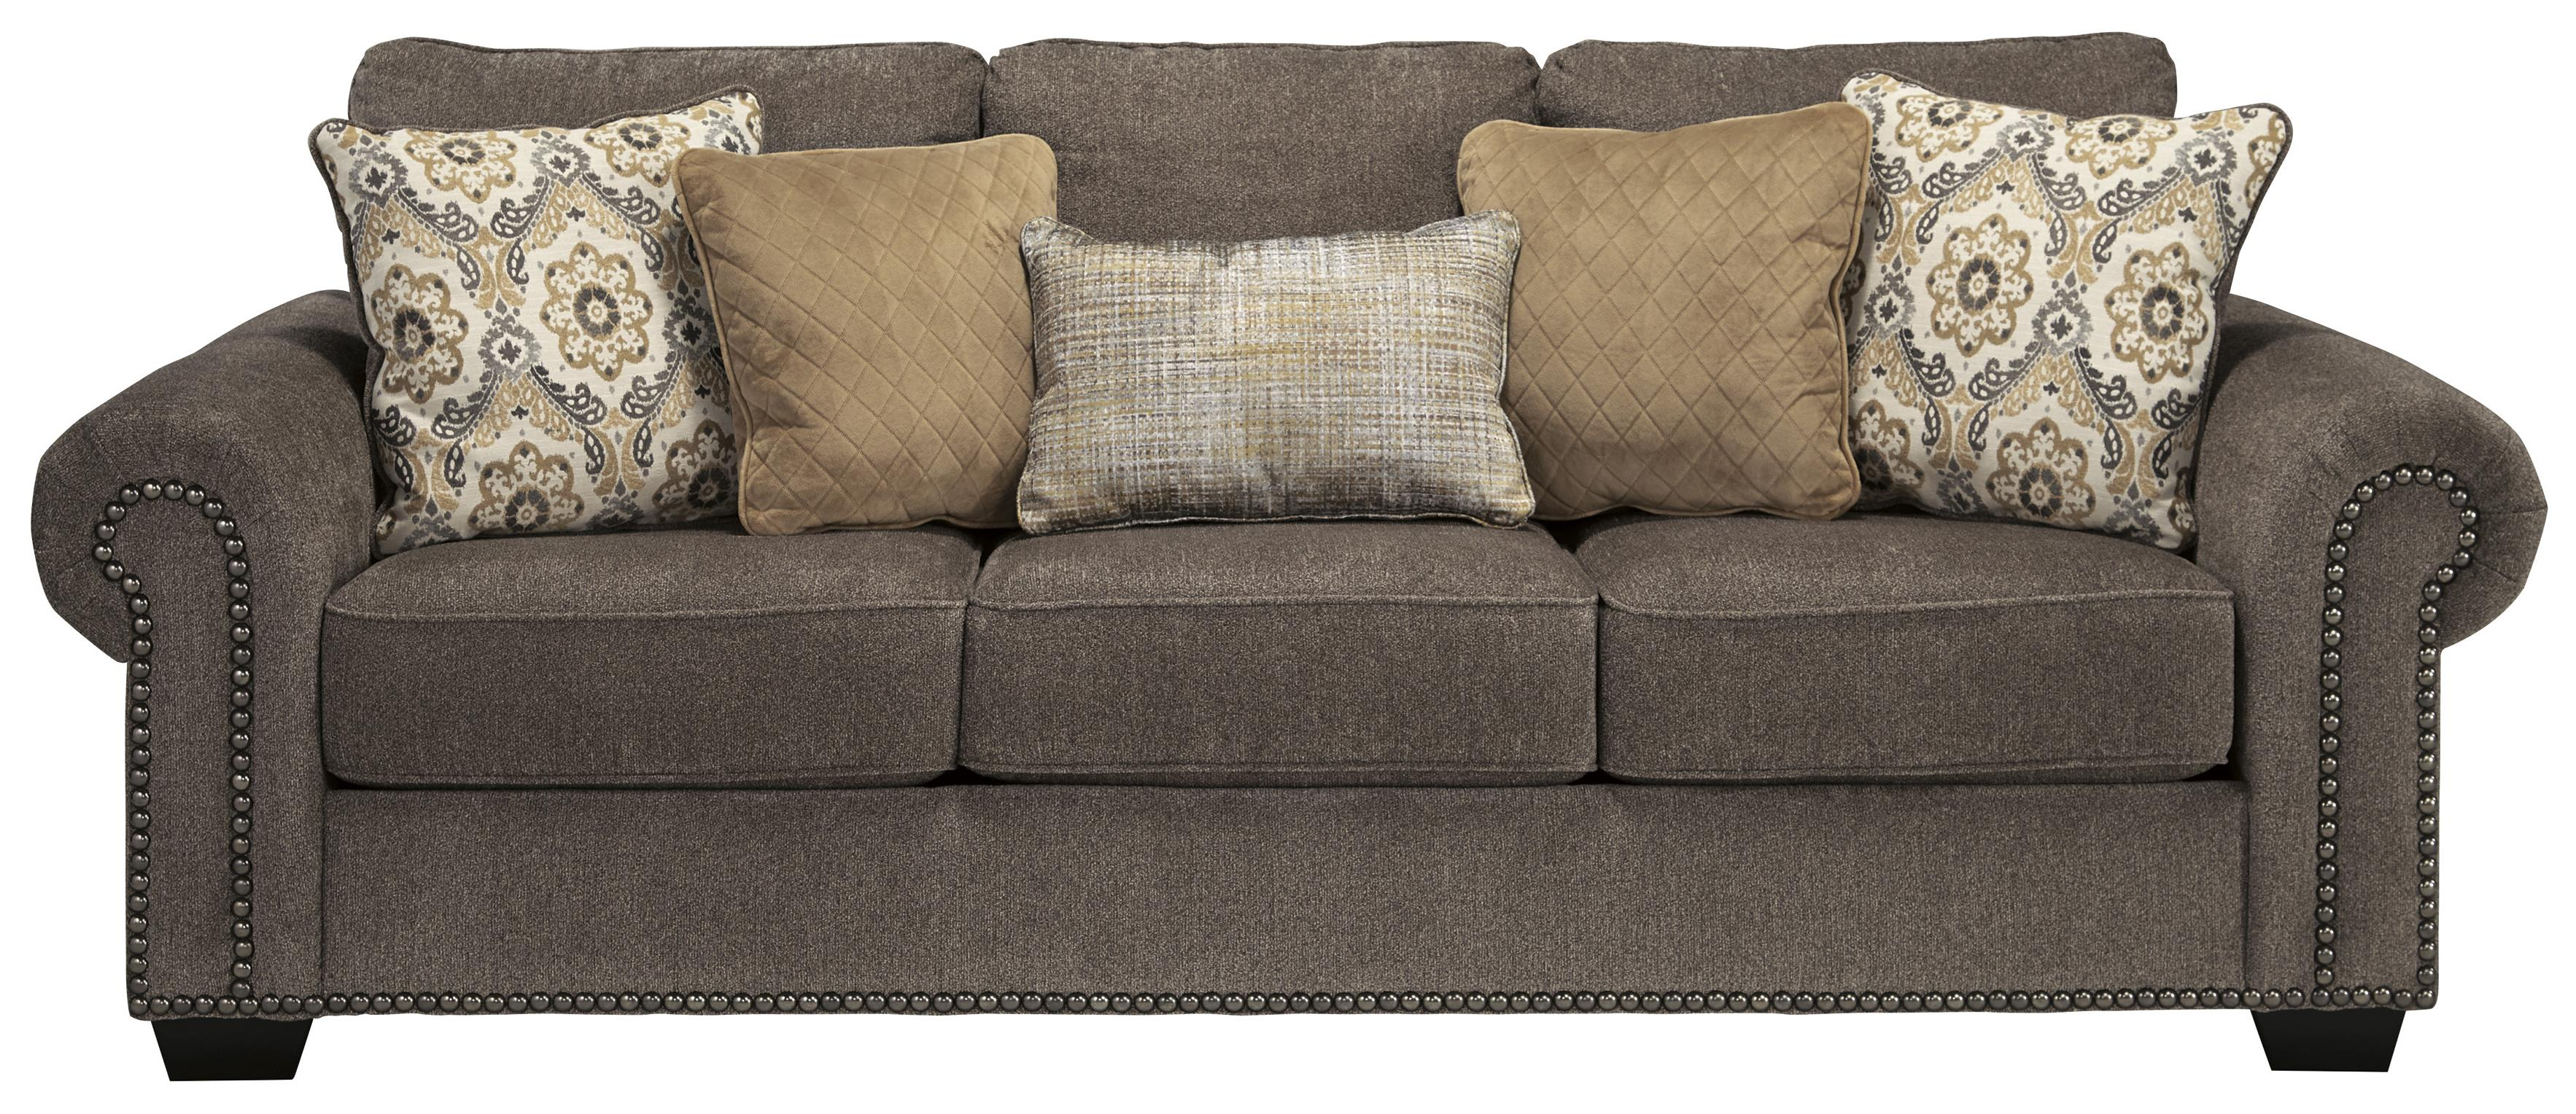 Benchcraft Emelen Sofa - Item Number: 4560038